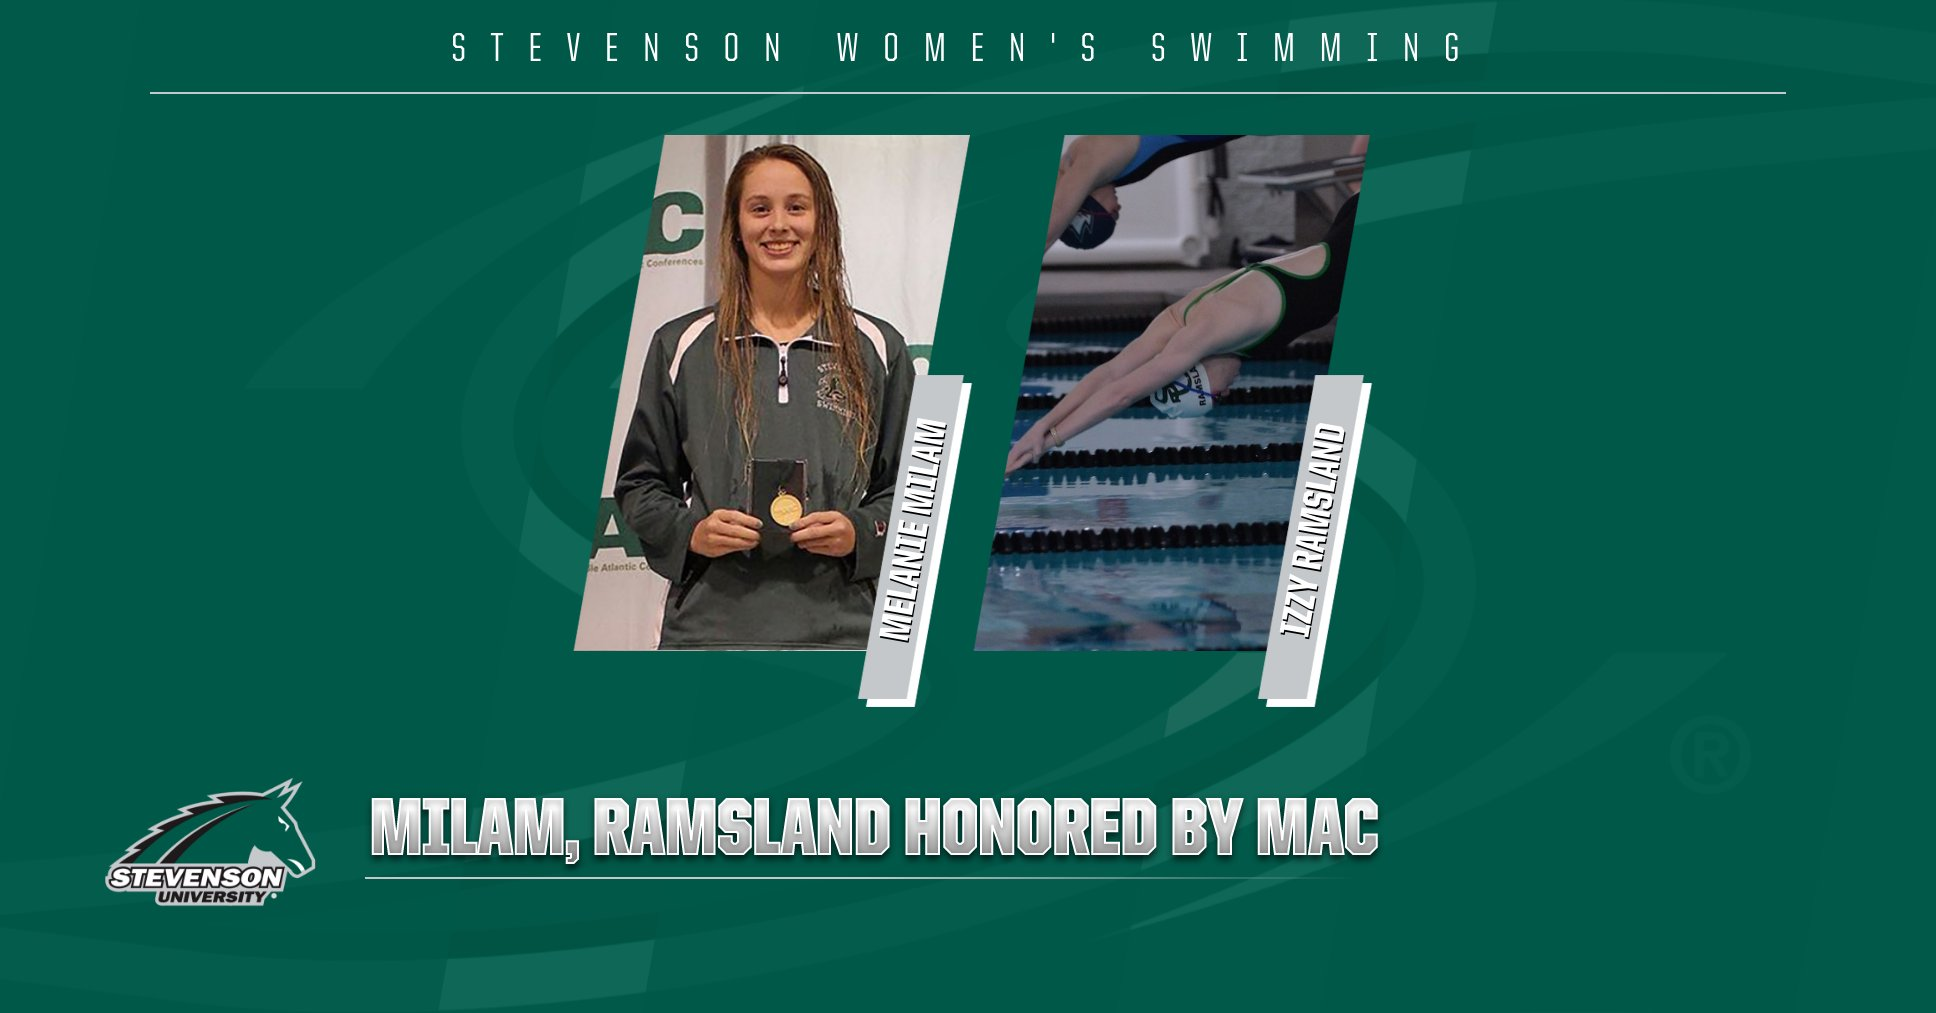 Milam, Ramsland Honored by MAC